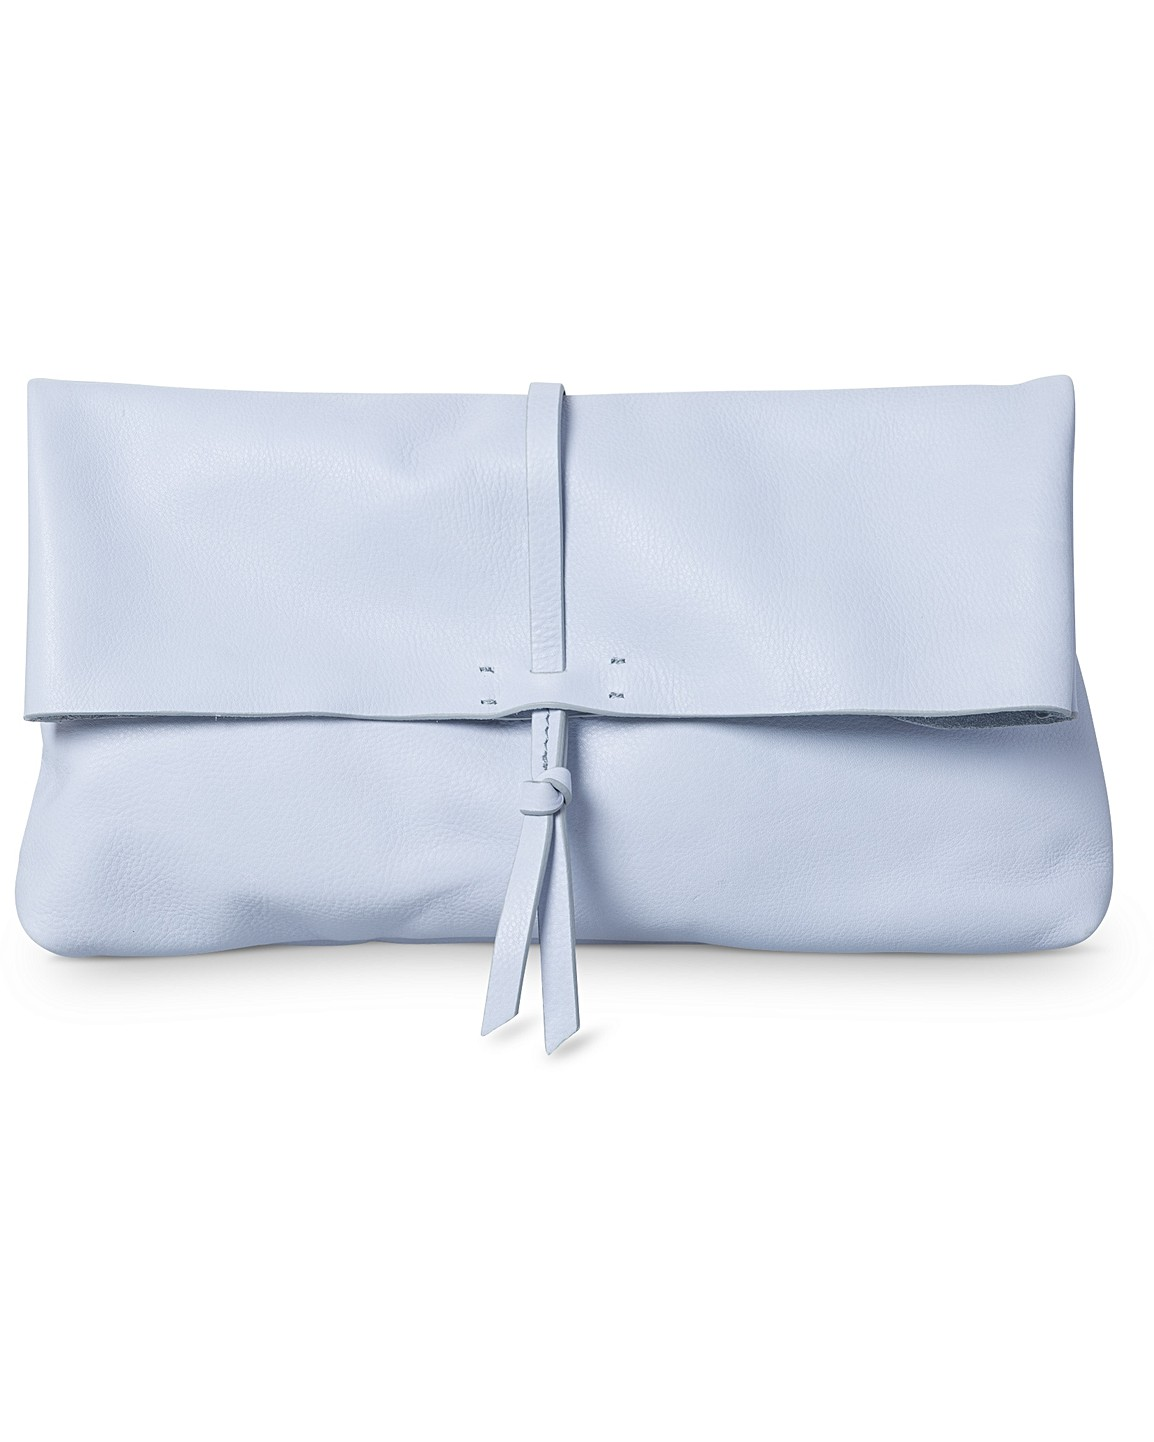 Tie   Roll Top Leather Clutch Bag 399f0808e5588